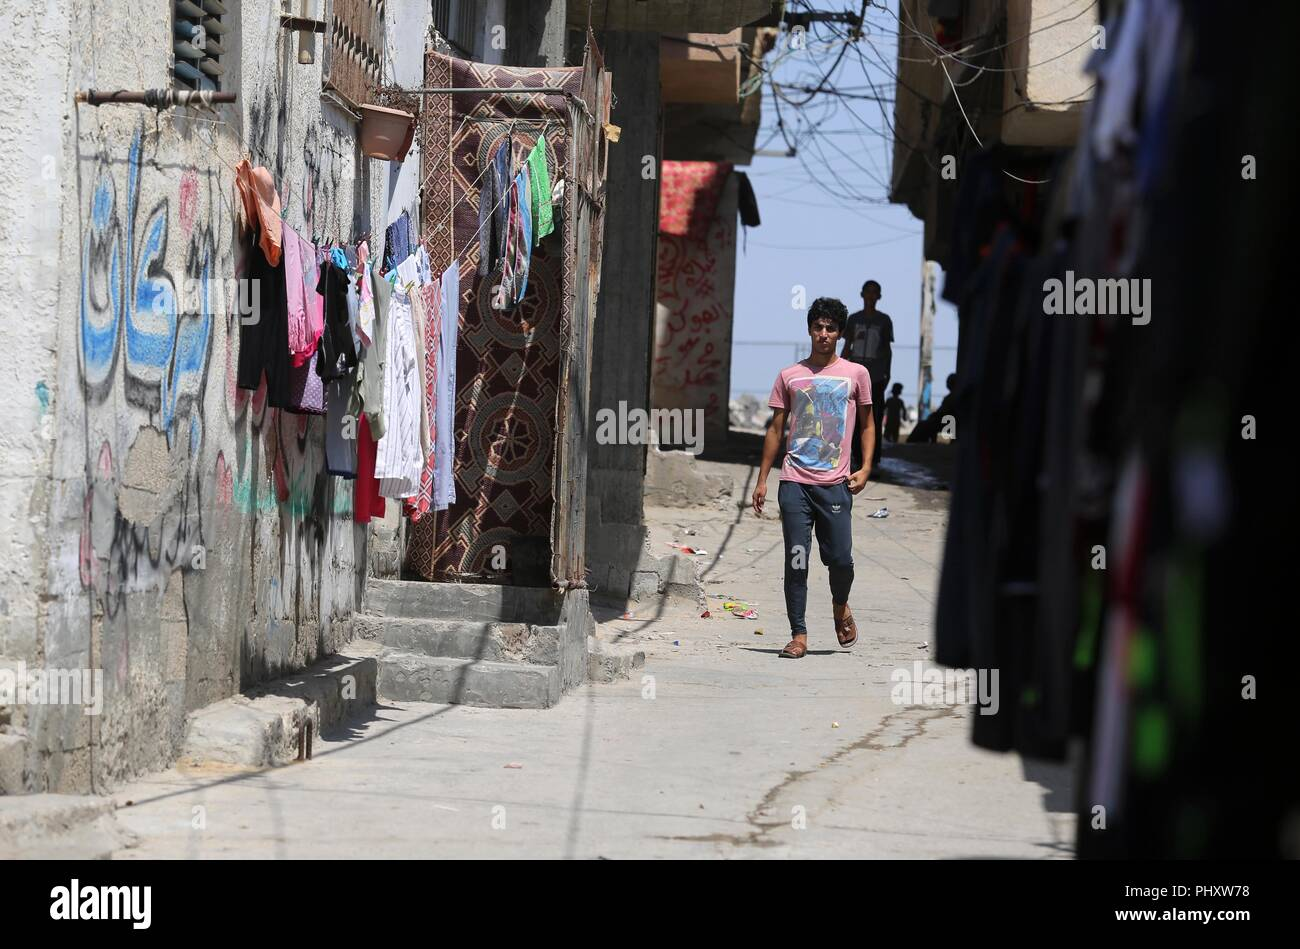 Gaza City, Gaza Strip, Palestinian Territory. 3rd Sep, 2018. Palestinian refugees walk in a street at Al-Shati refugee camp, in Gaza City on September 3, 2018. The United States halted all funding to United Nations' agency that helps Palestinian refugees. State Department spokeswoman Heather Nauert said the business model and fiscal practices of the United Nations Relief and Works Agency (UNRWA) made it an 'irredeemably flawed operation Credit: Ashraf Amra/APA Images/ZUMA Wire/Alamy Live News - Stock Image